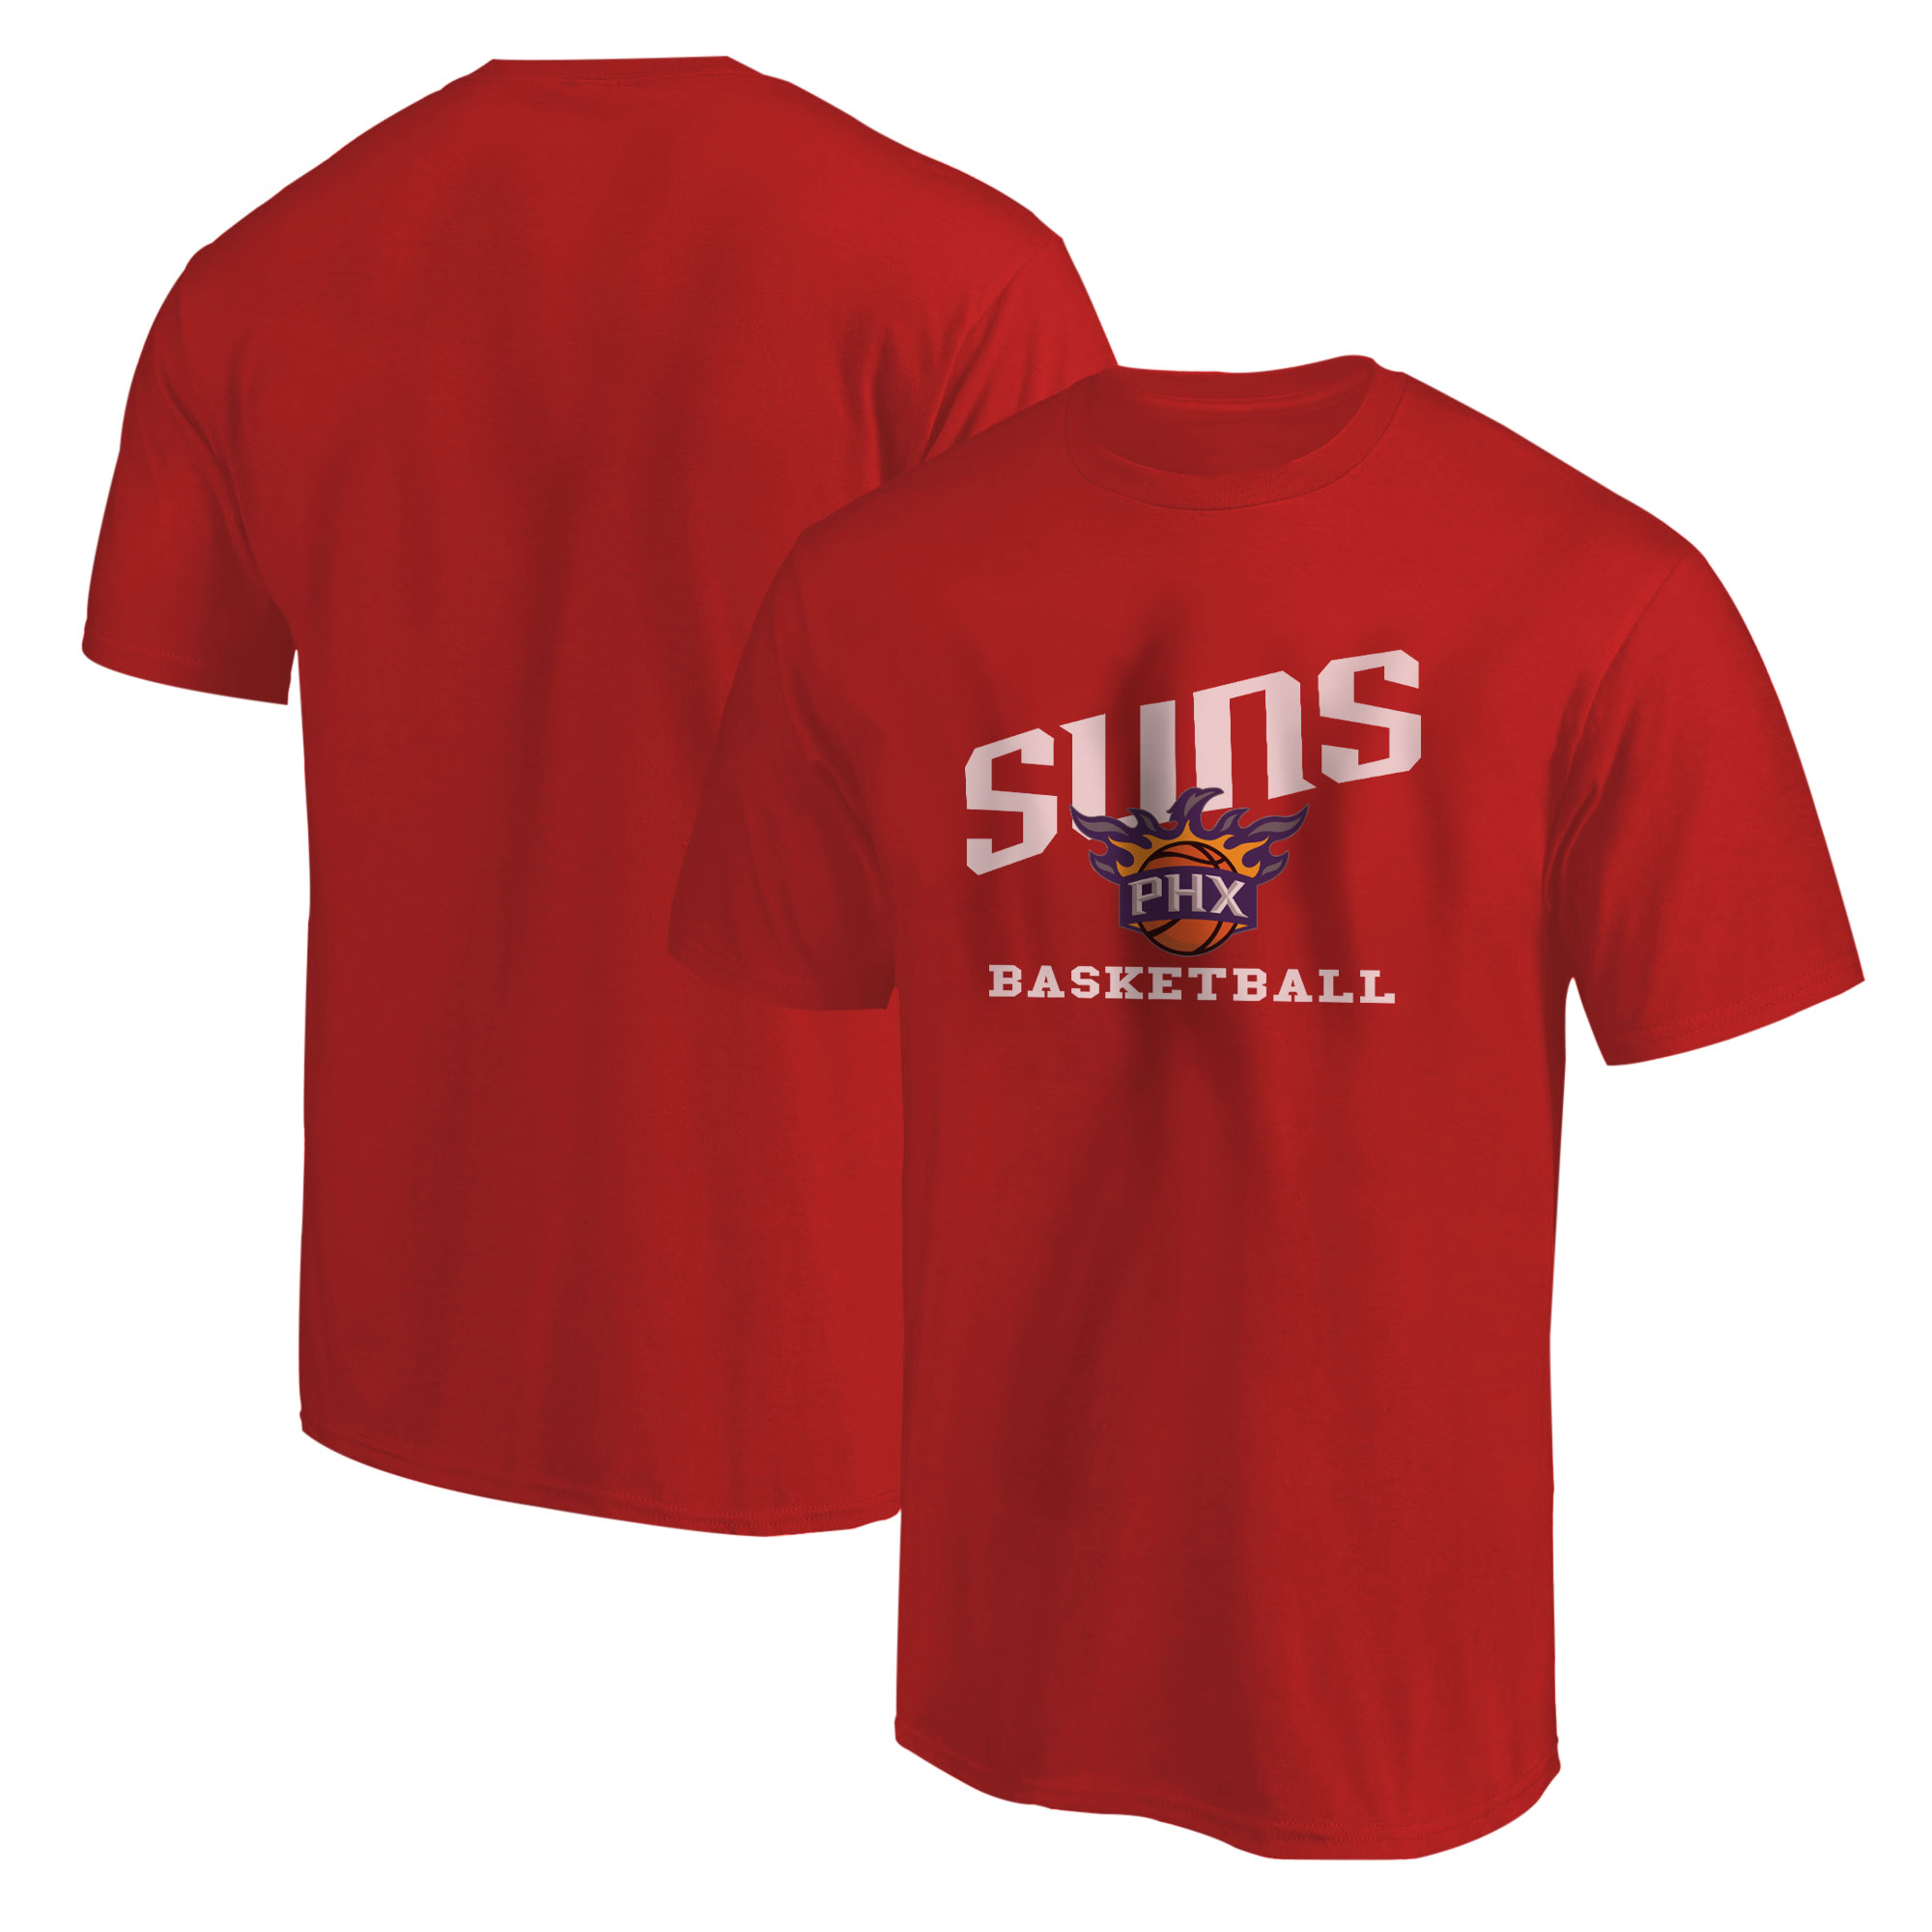 Phoenix Suns Tshirt (TSH-RED-188-NBA-PHO-BASKETBALL)